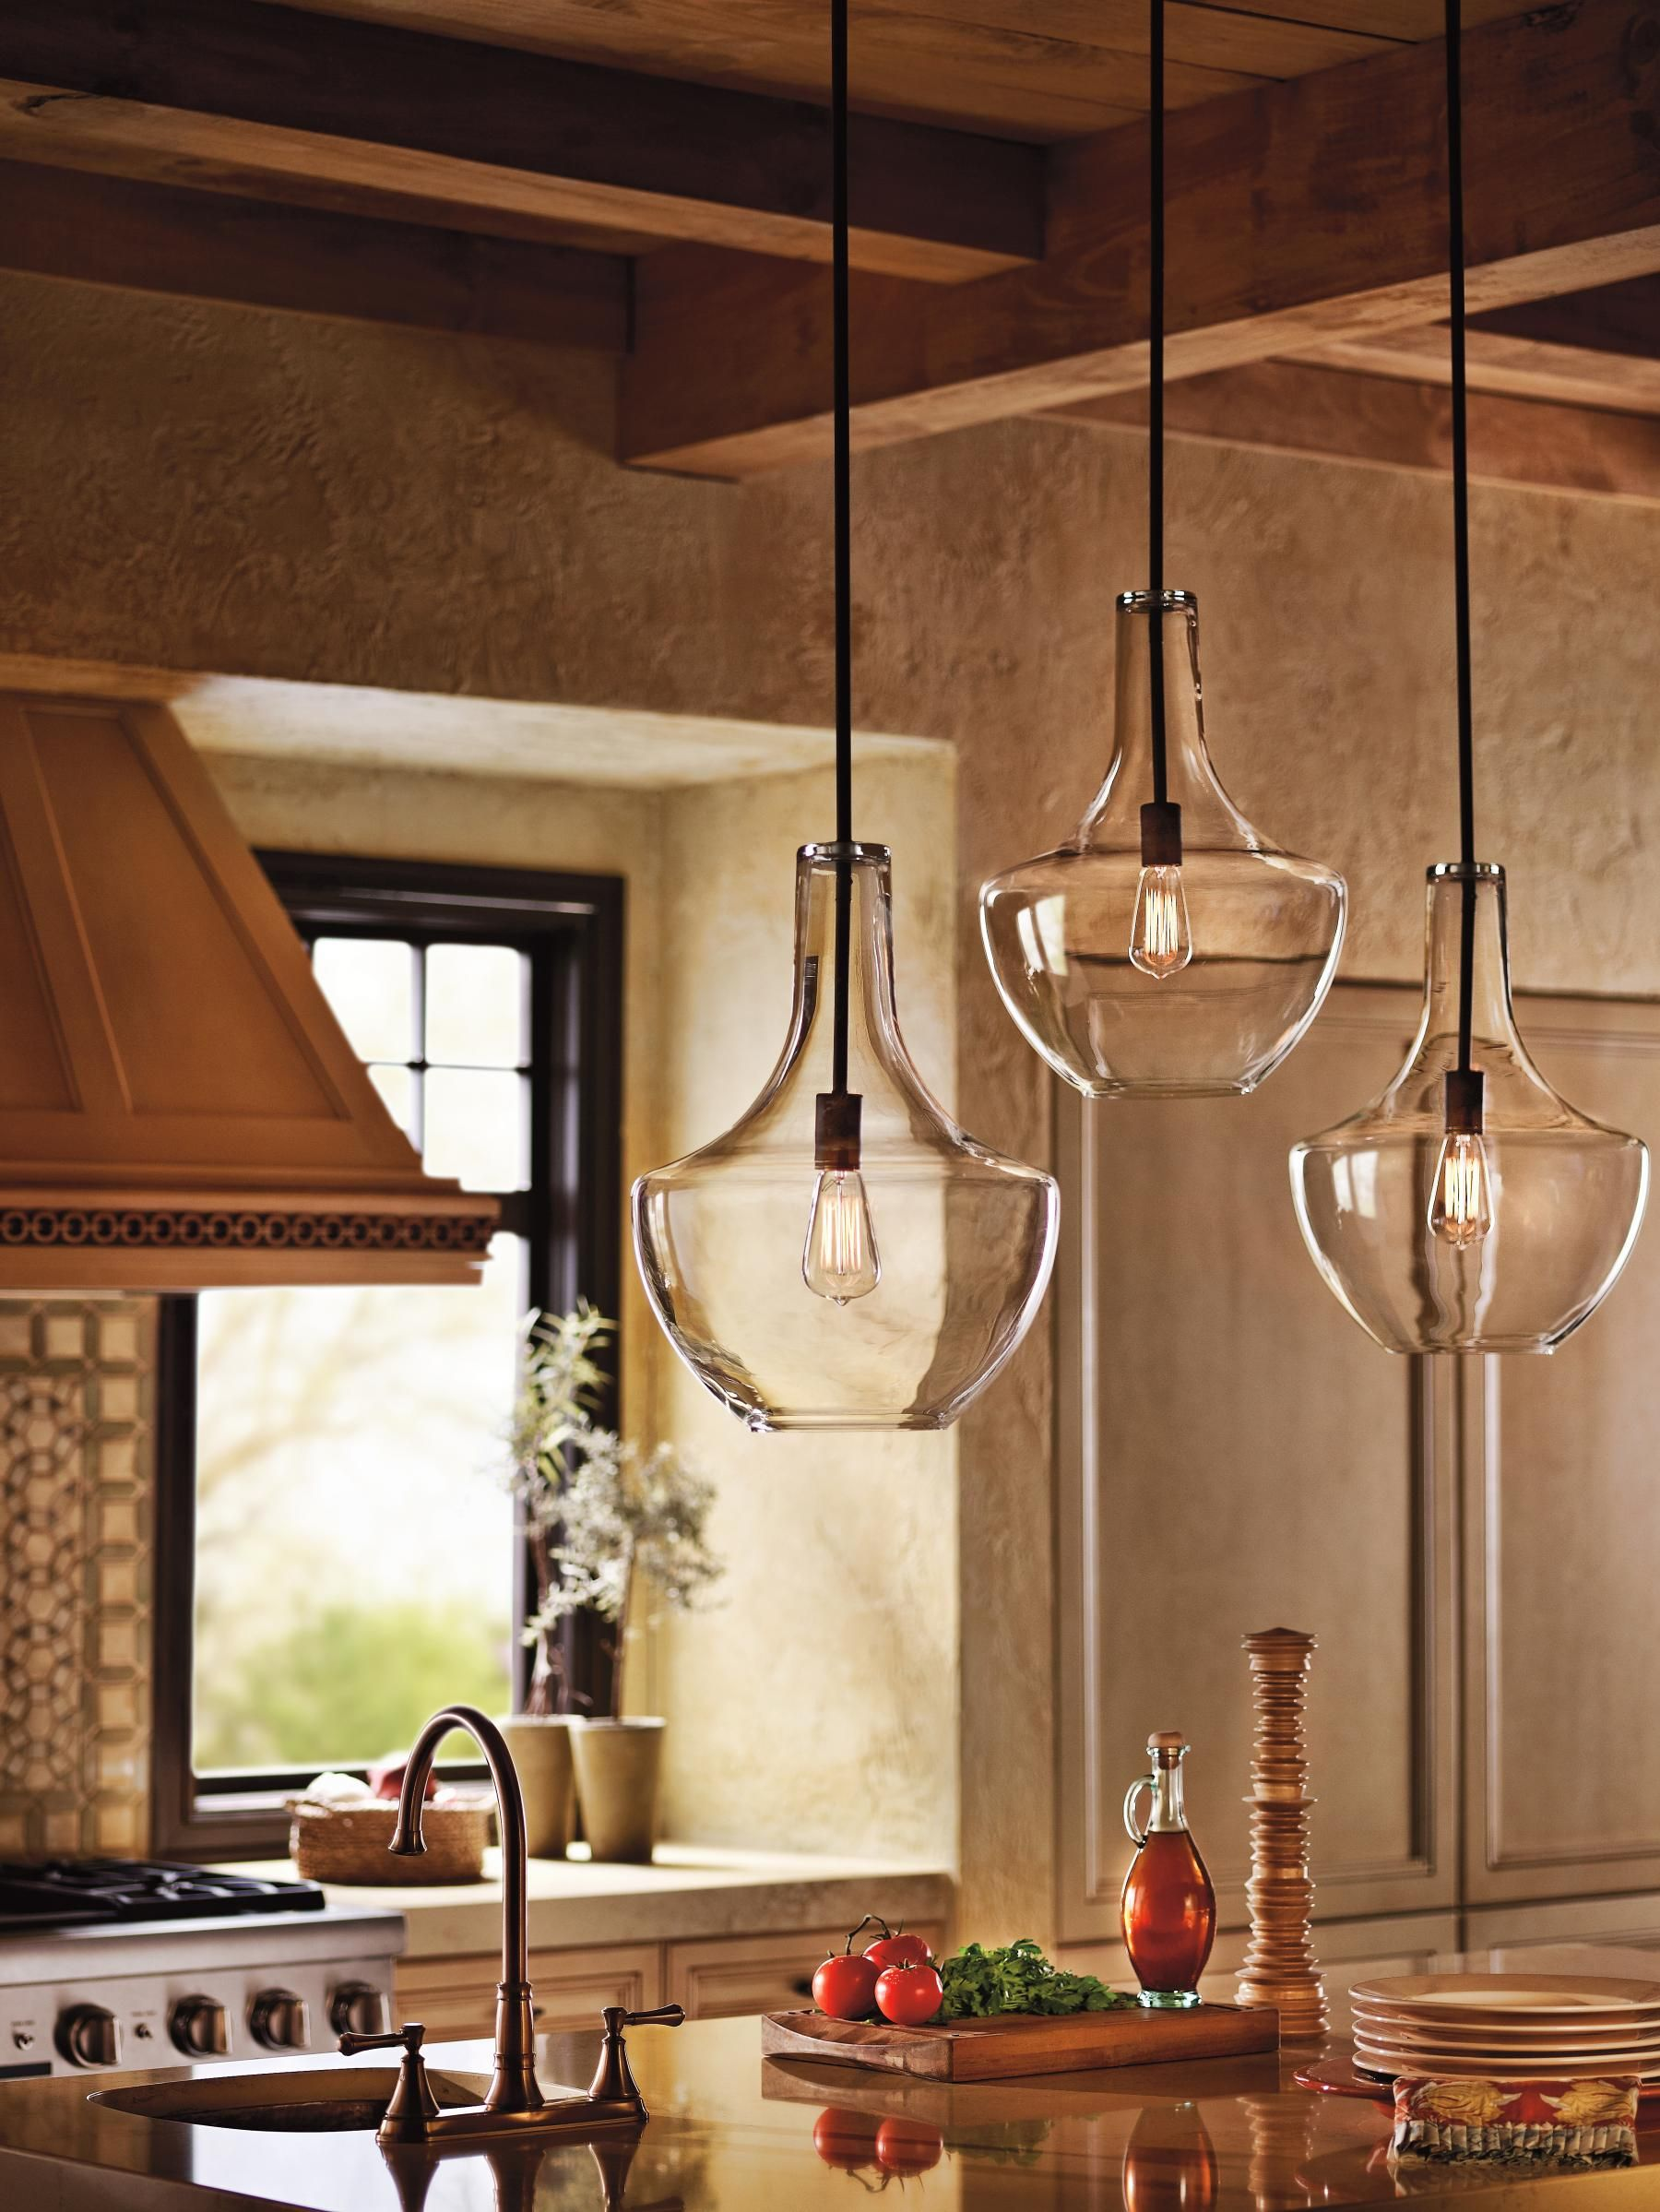 kitchen pendant lights This transitional style pendant is a perfect option to light up and decorate your kitchen